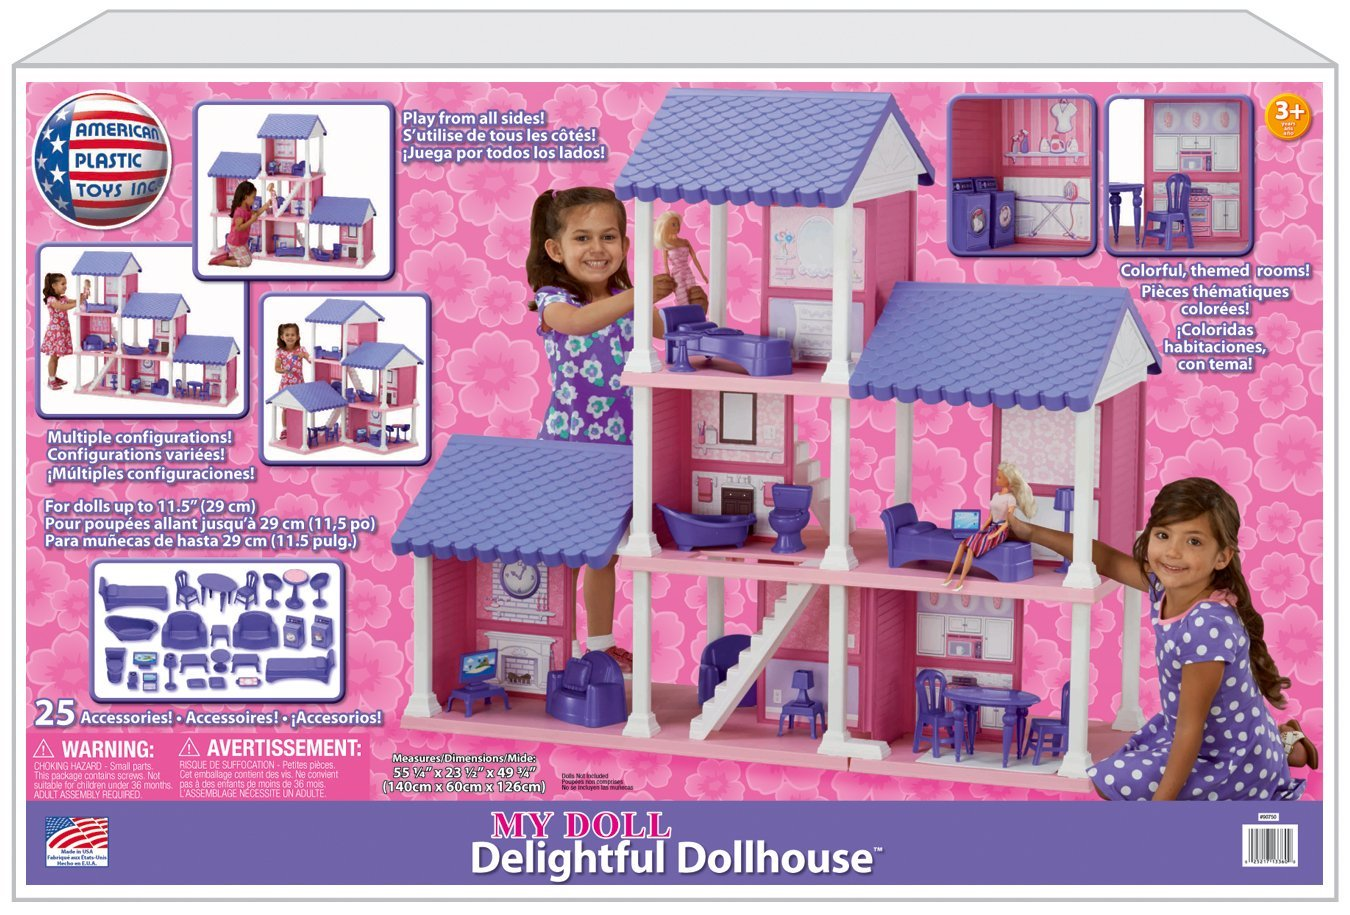 House Toys For Girls : Barbie size dollhouse furniture girls playhouse dream play plastic